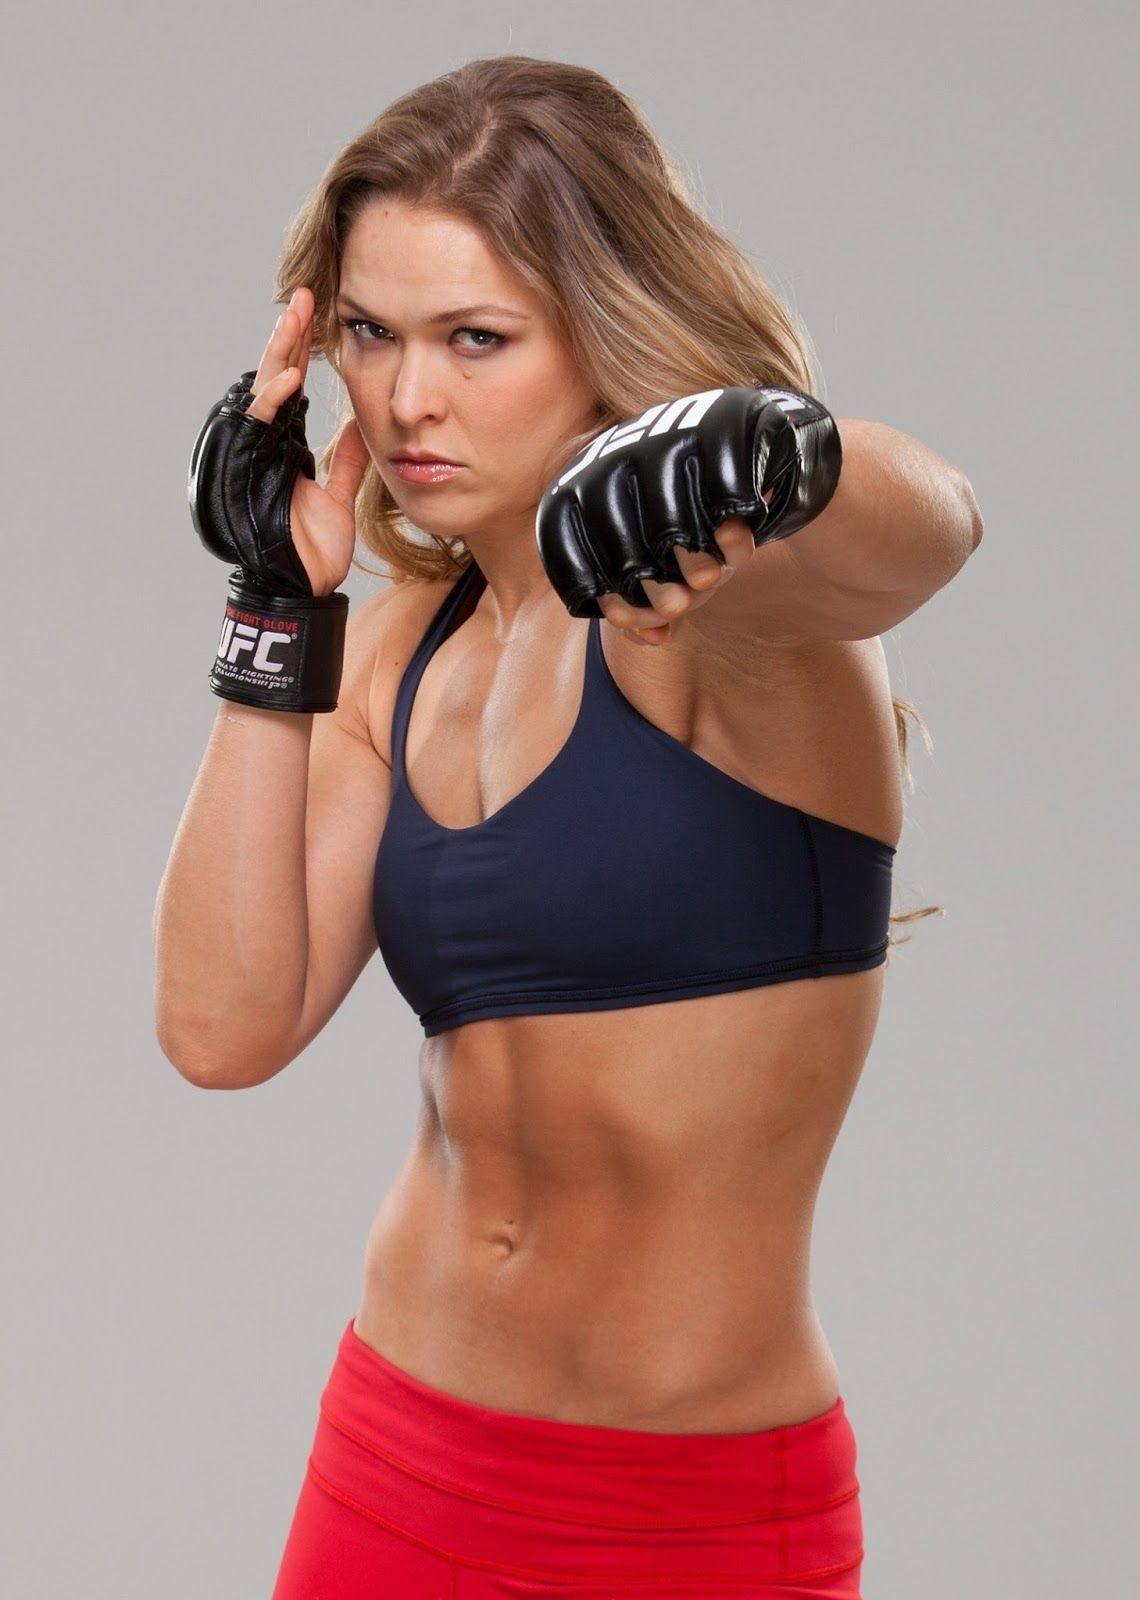 Ronda Rousey wallpapers HD backgrounds download Mobile iPhone 6s